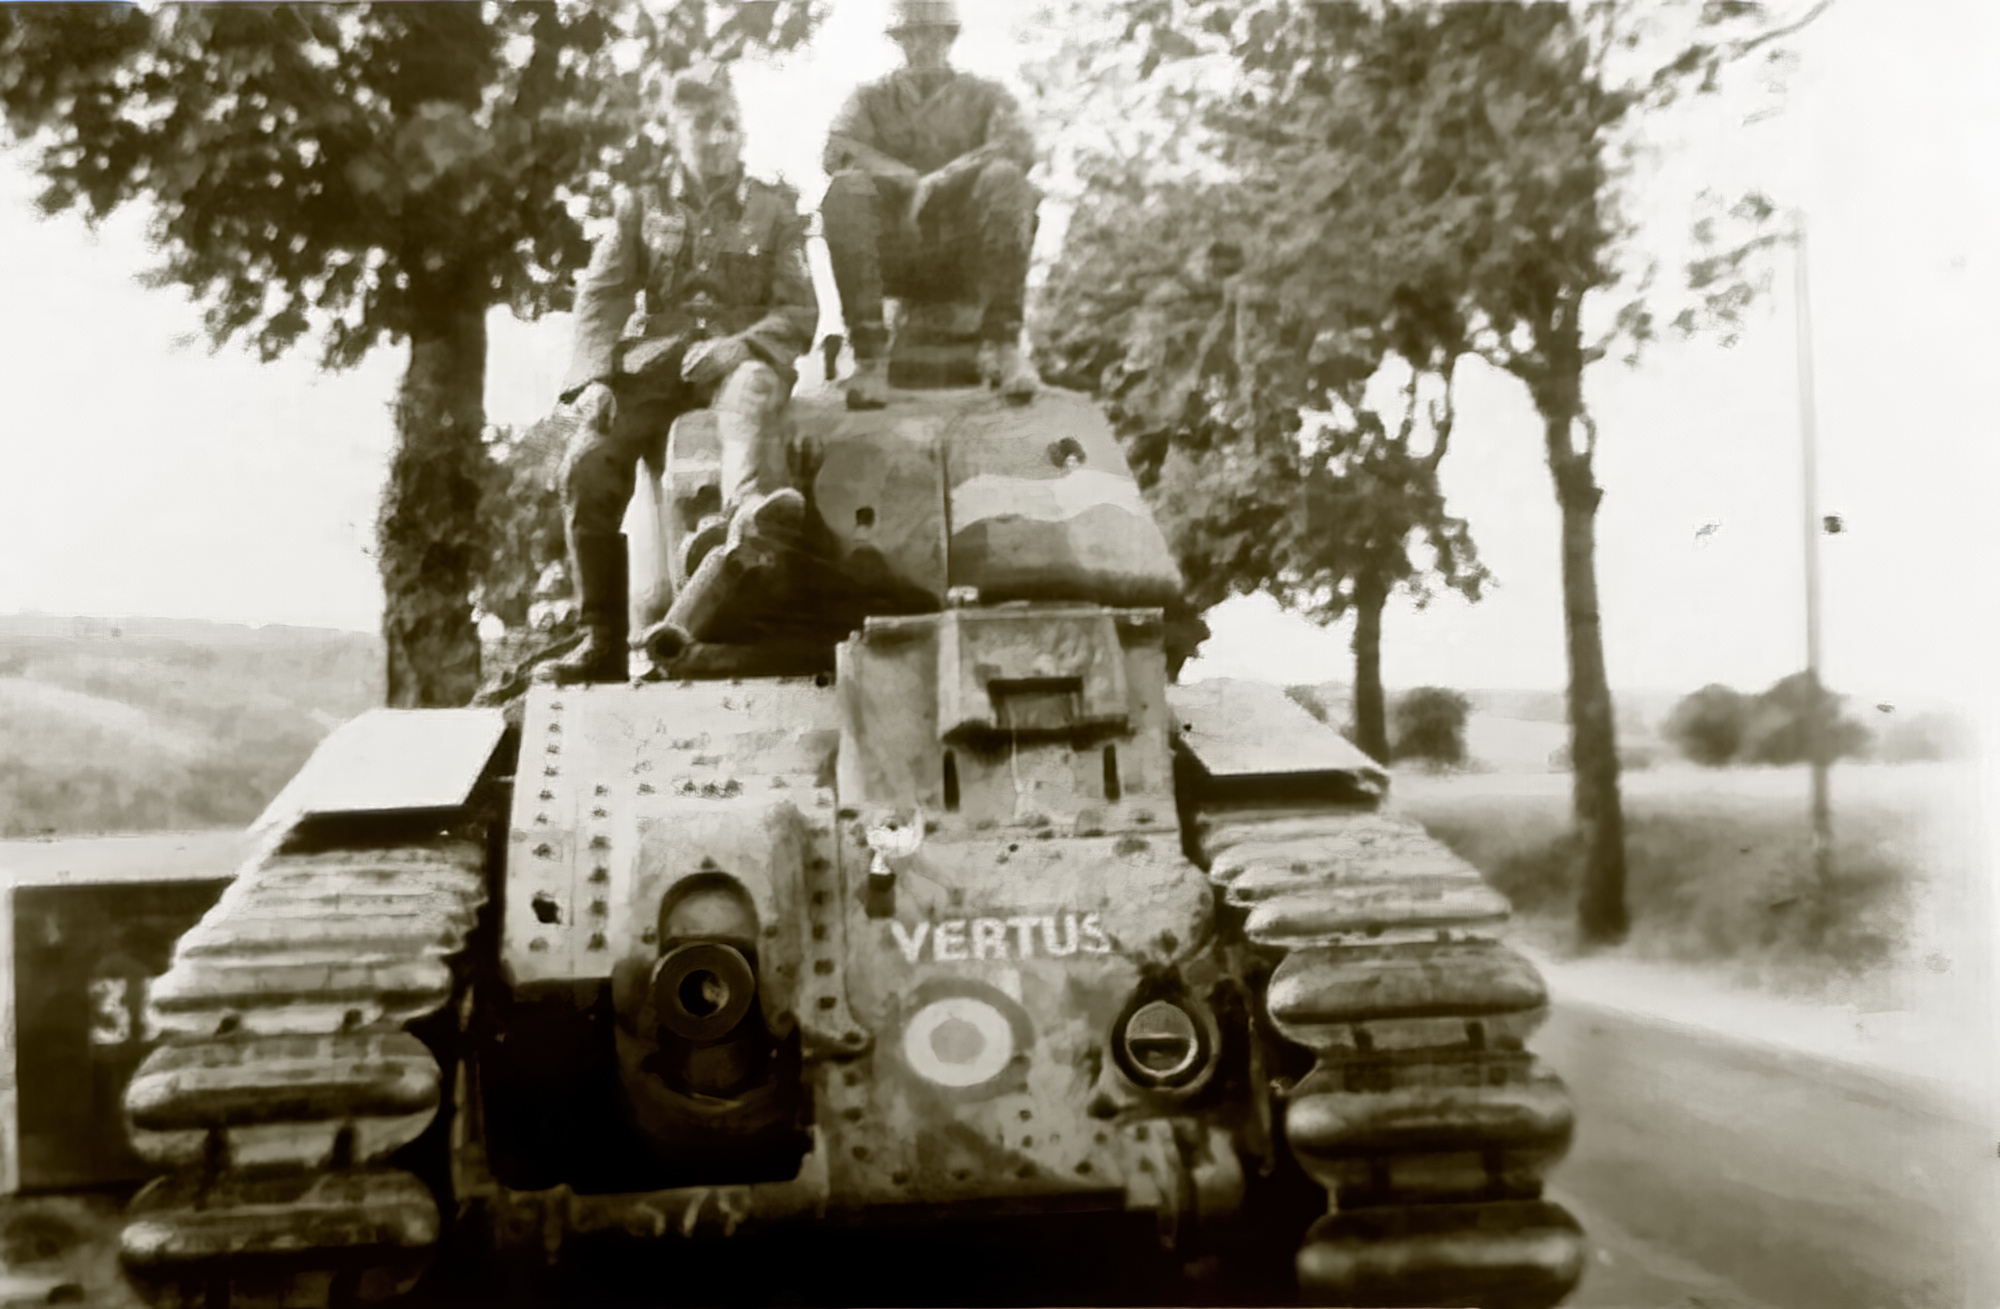 French Army Renault Char B1 named Vertus captured during the battle of France 1940 ebay 01